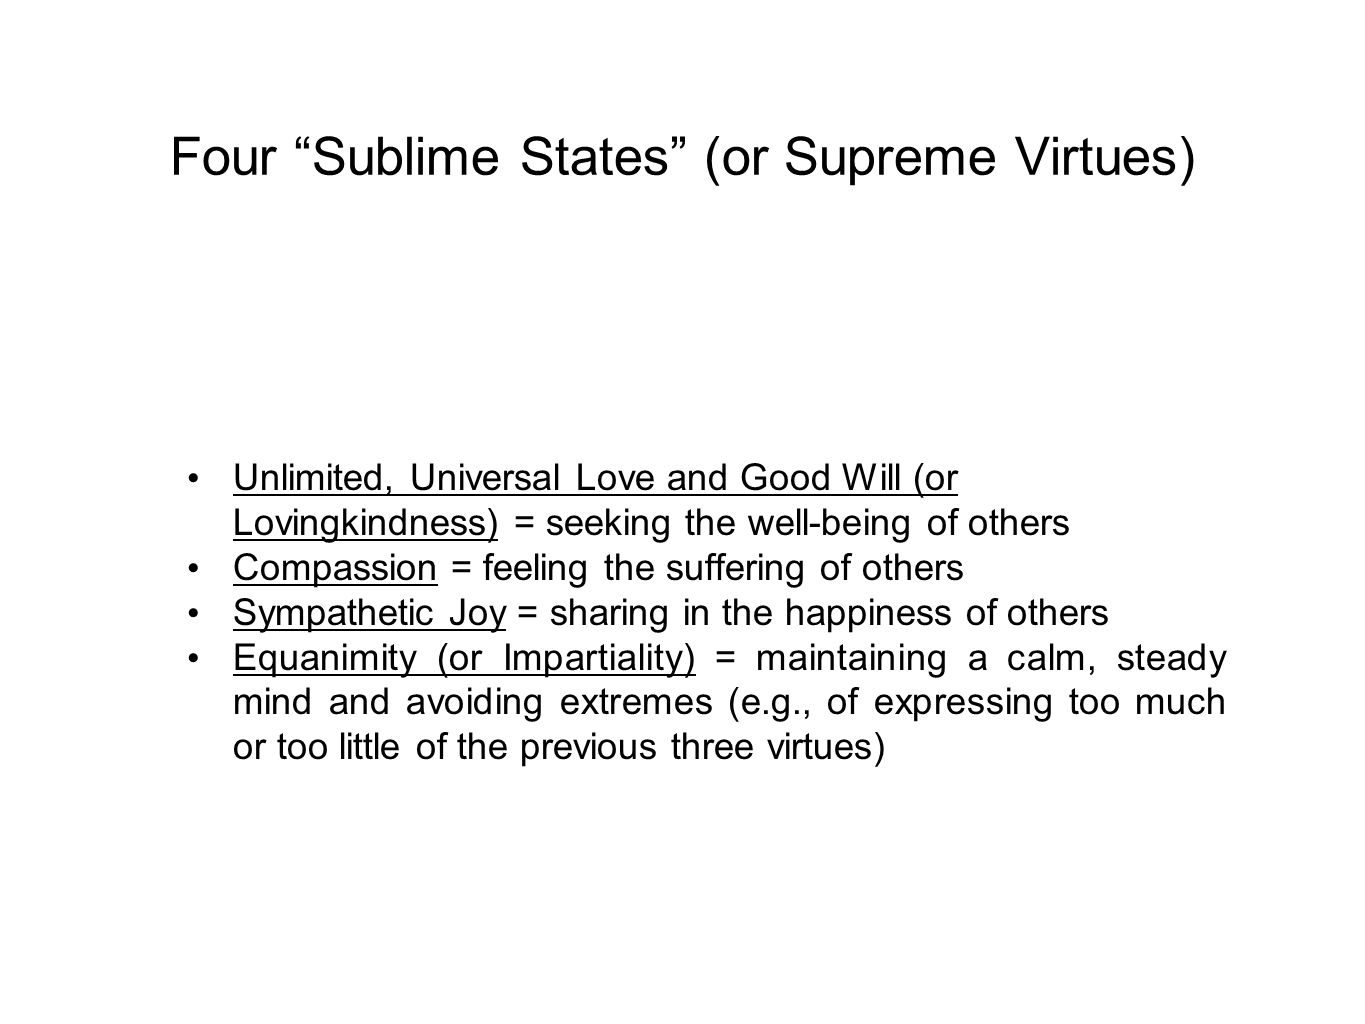 Four Sublime States (or Supreme Virtues) Unlimited, Universal Love and Good Will (or Lovingkindness) = seeking the well-being of others Compassion = feeling the suffering of others Sympathetic Joy = sharing in the happiness of others Equanimity (or Impartiality) = maintaining a calm, steady mind and avoiding extremes (e.g., of expressing too much or too little of the previous three virtues)